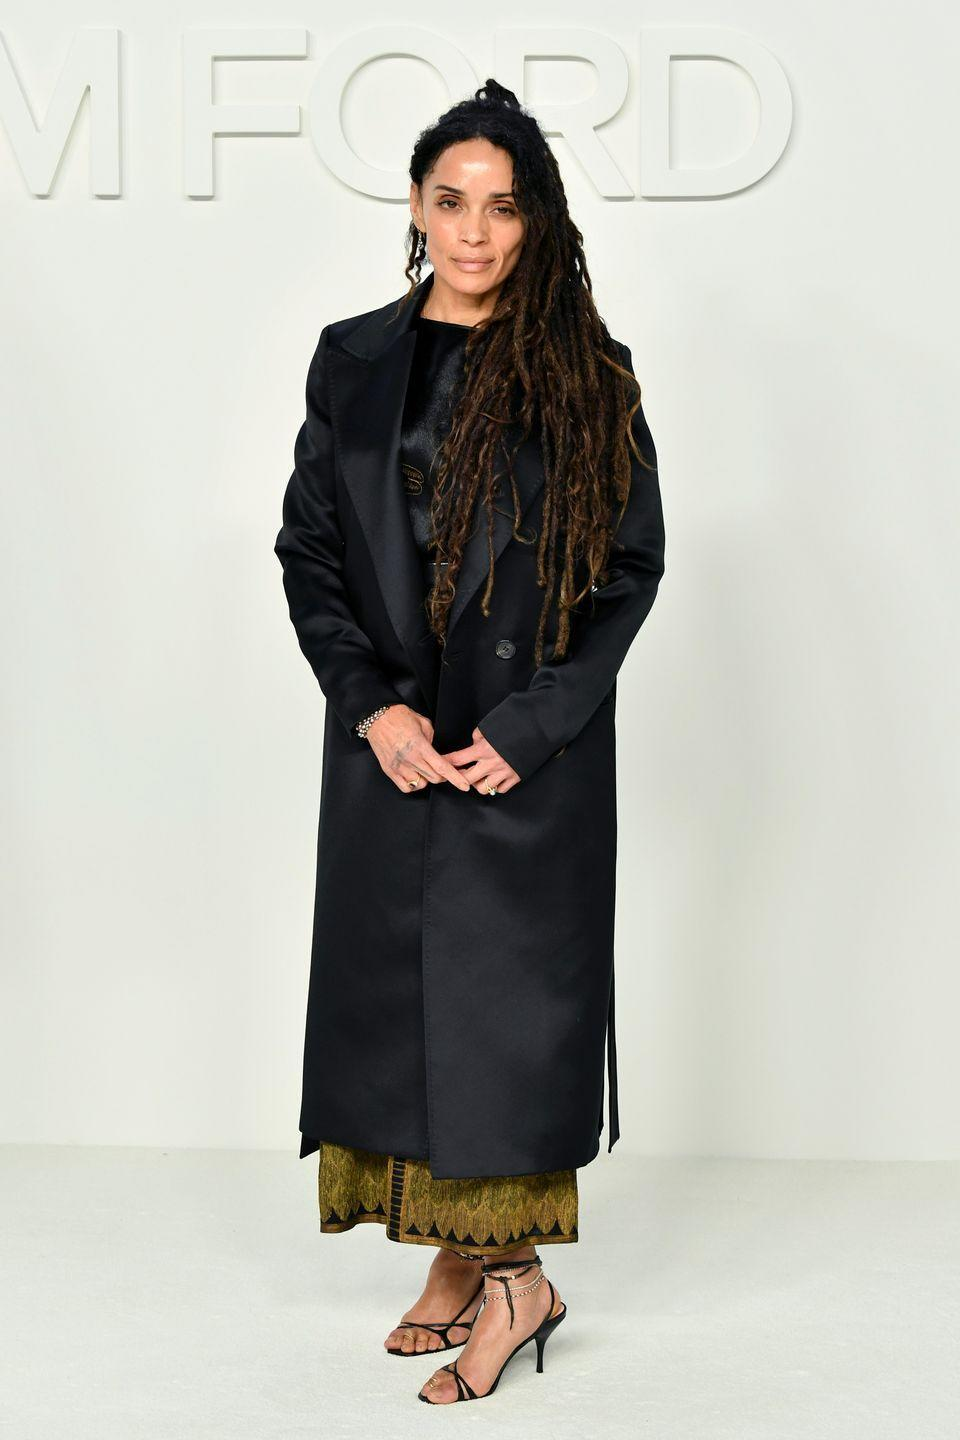 <p>Bonet hasn't done a ton of work since her success in the '90s and early 2000s, but she did appear in<em> Life on Mars</em> and <em>The Red Road</em>. She's married to <em>Game of Thrones</em> star Jason Momoa and mother to actress Zoë Kravitz.</p>